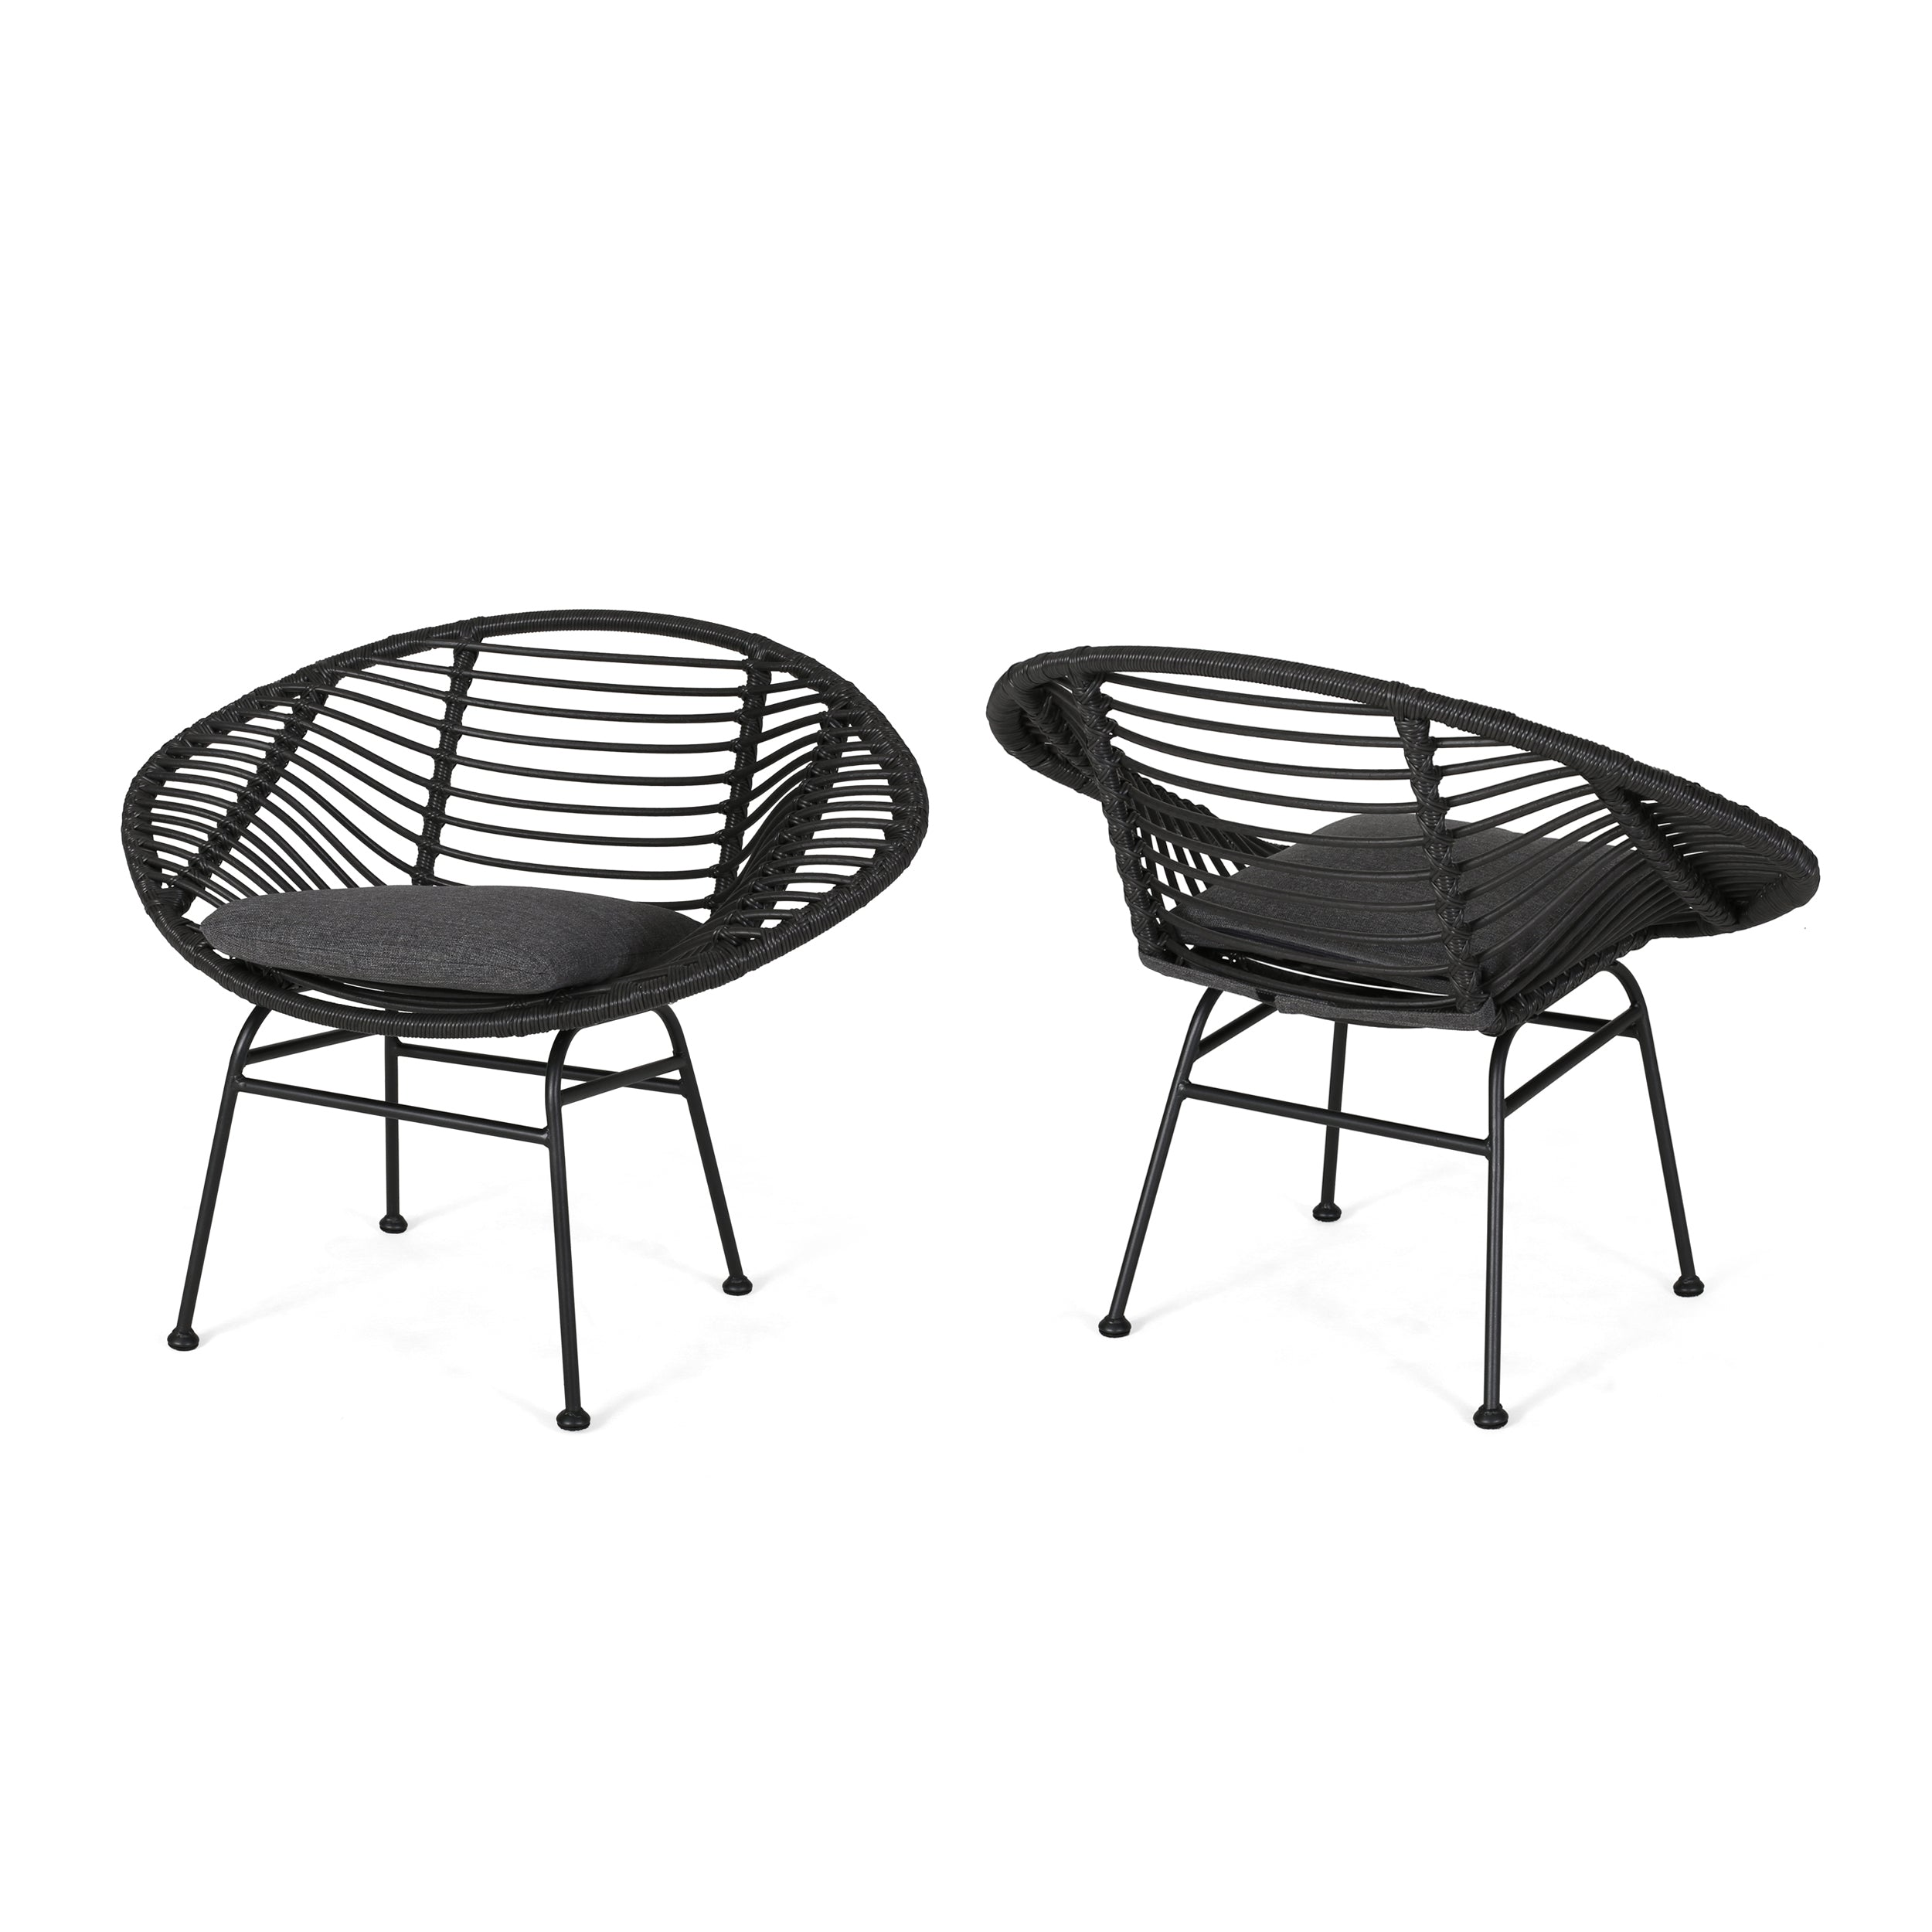 Aleah Indoor Woven Faux Rattan Chairs with Cushions Set of 2